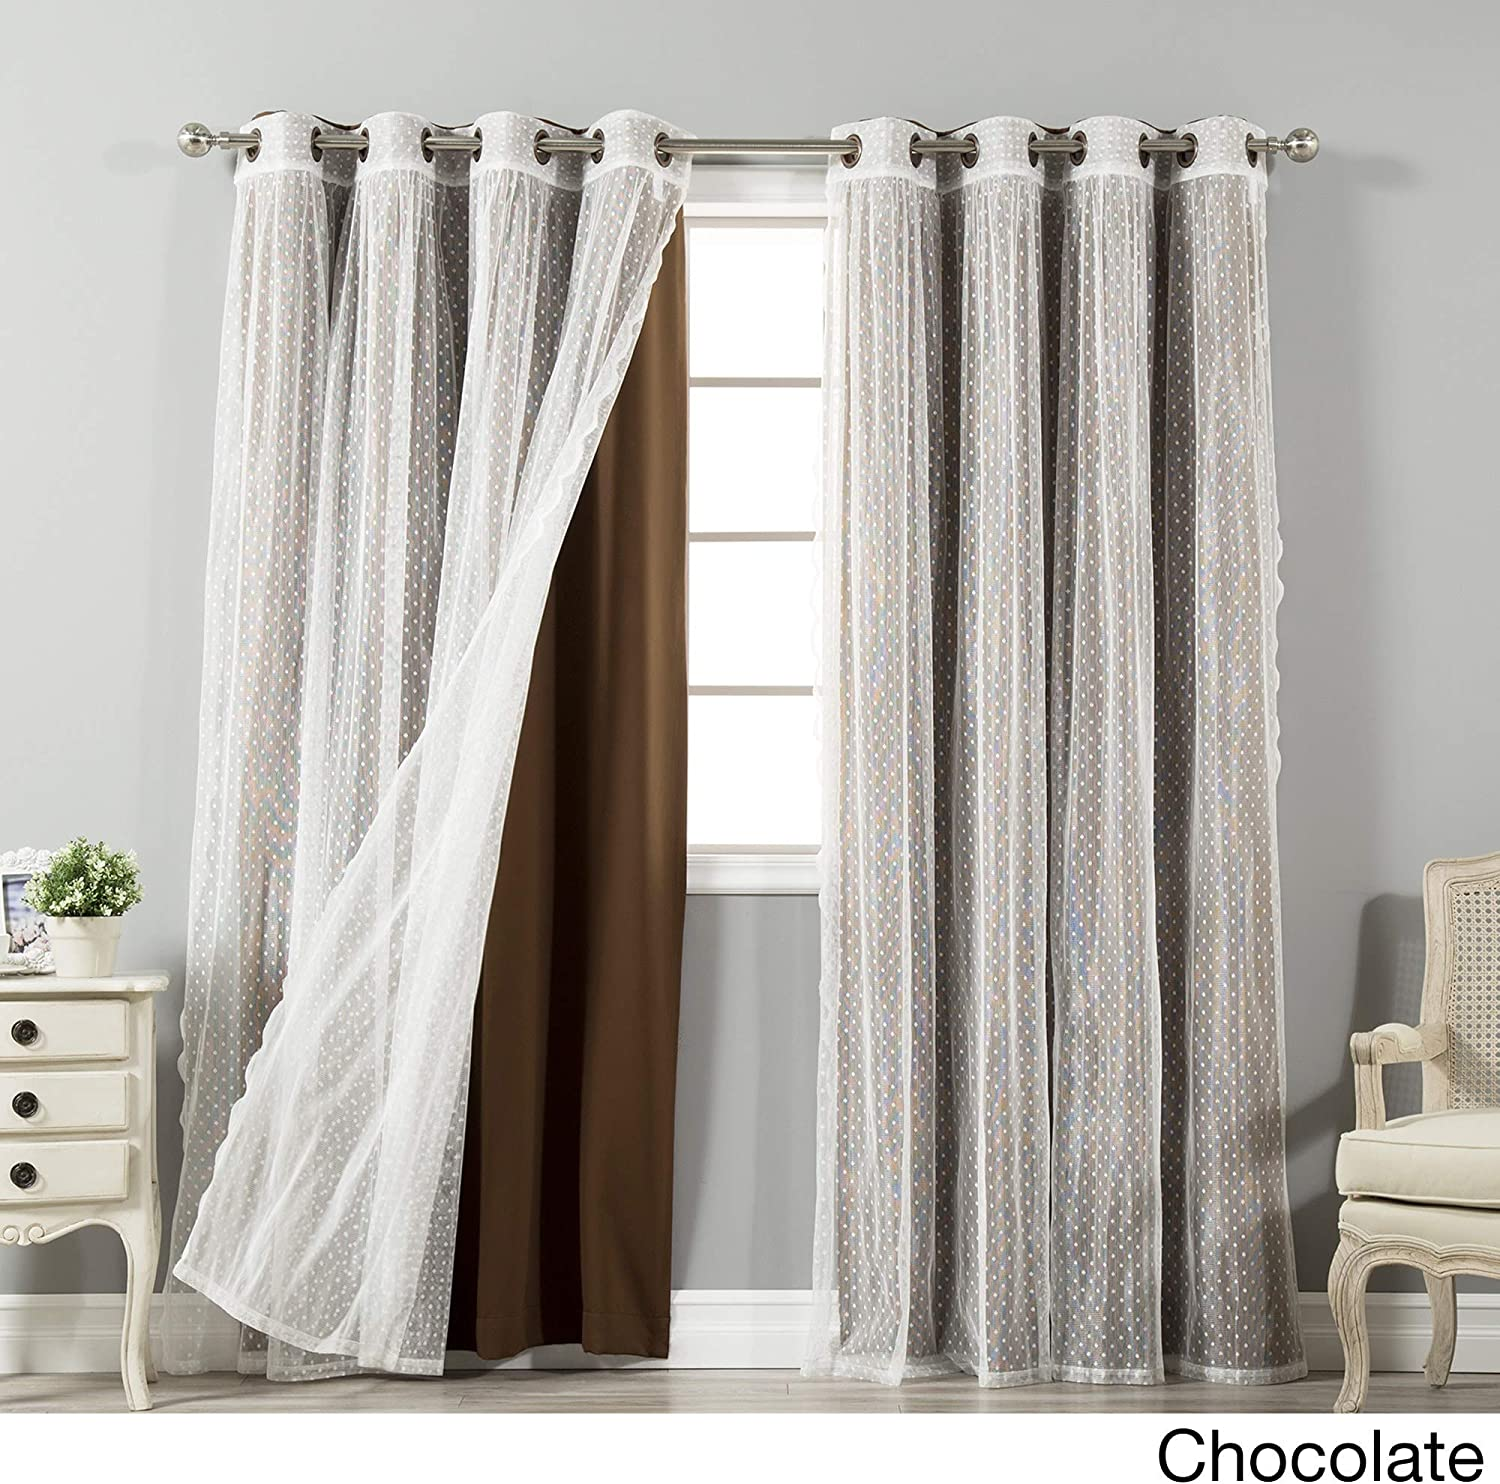 Aurora Home Mix & Match Blackout and Dot Sheer 4 Piece Curtain Panel Set - 52x84 Chocolate 84 Inches